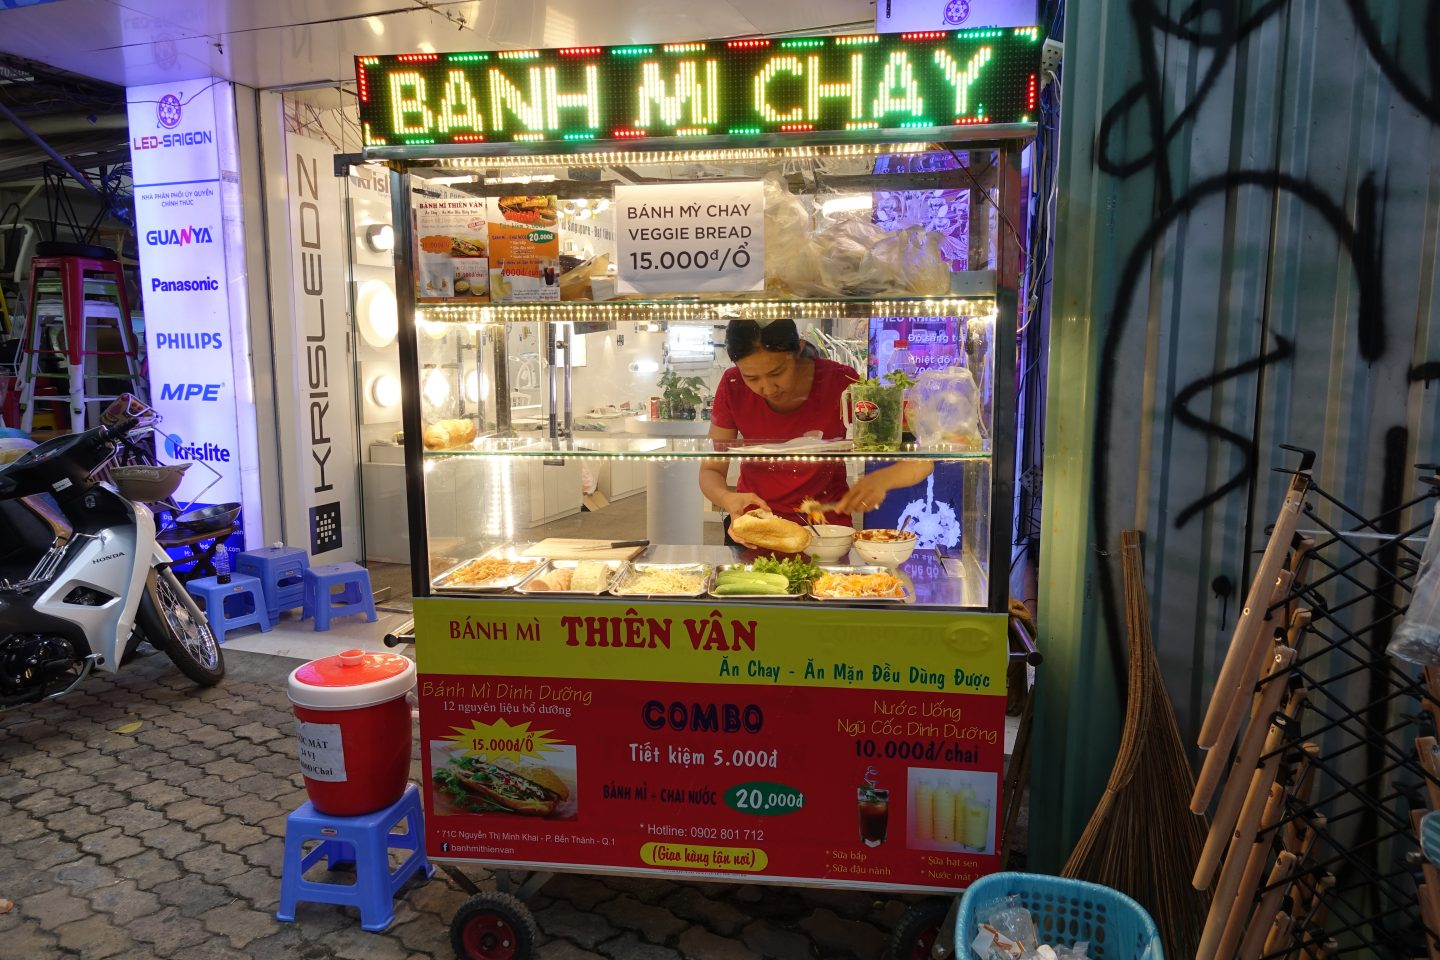 Vegan Banh Mi at Banh Mi Thien Van